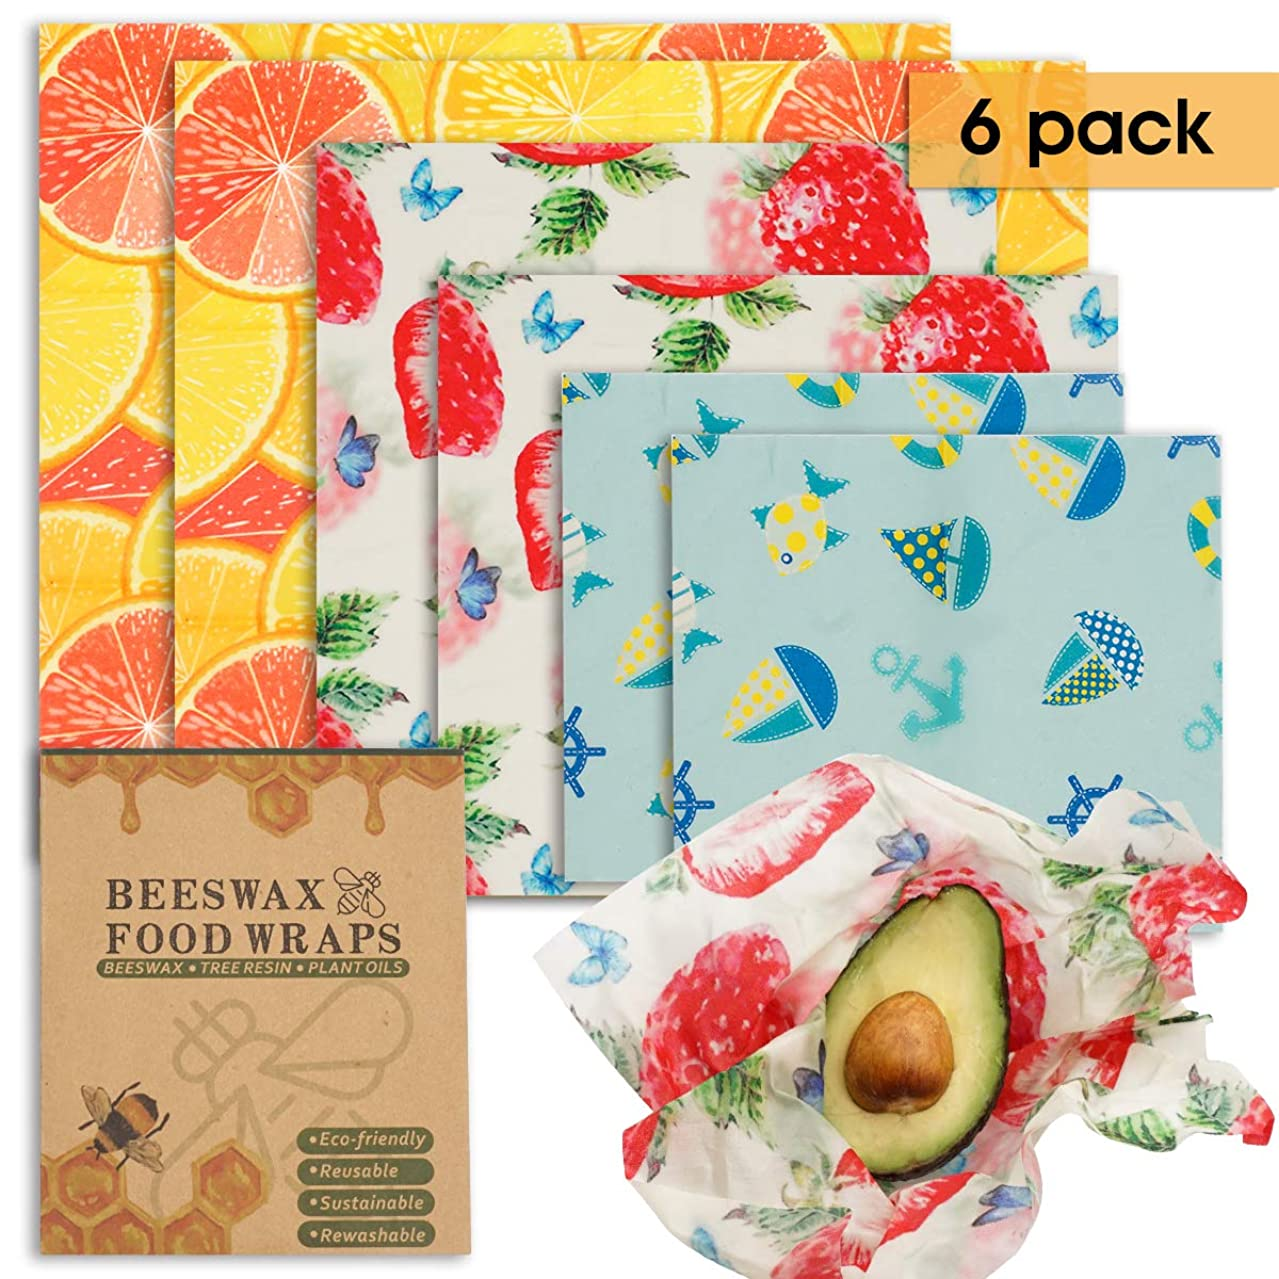 Beeswax Wraps 6 Packs Reusable Food Storage Wraps and Organic Bowl Cover Plastic Free Eco Friendly Plastic Alternative (2 Small, 2 Medium, 2 Large)